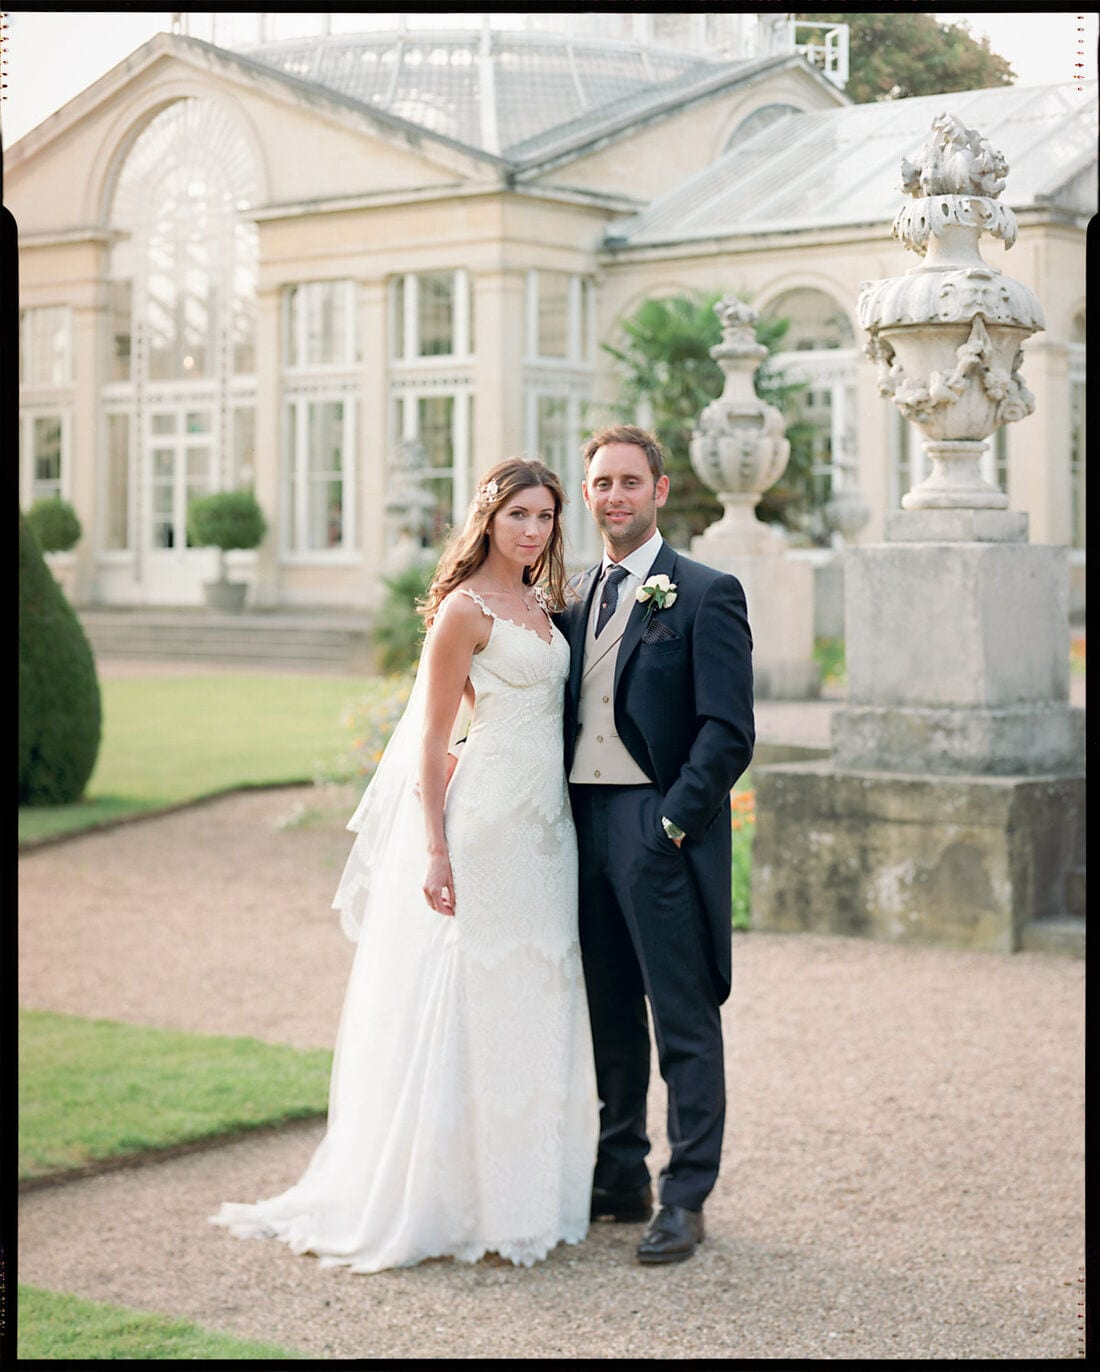 syon park wedding photography portrait